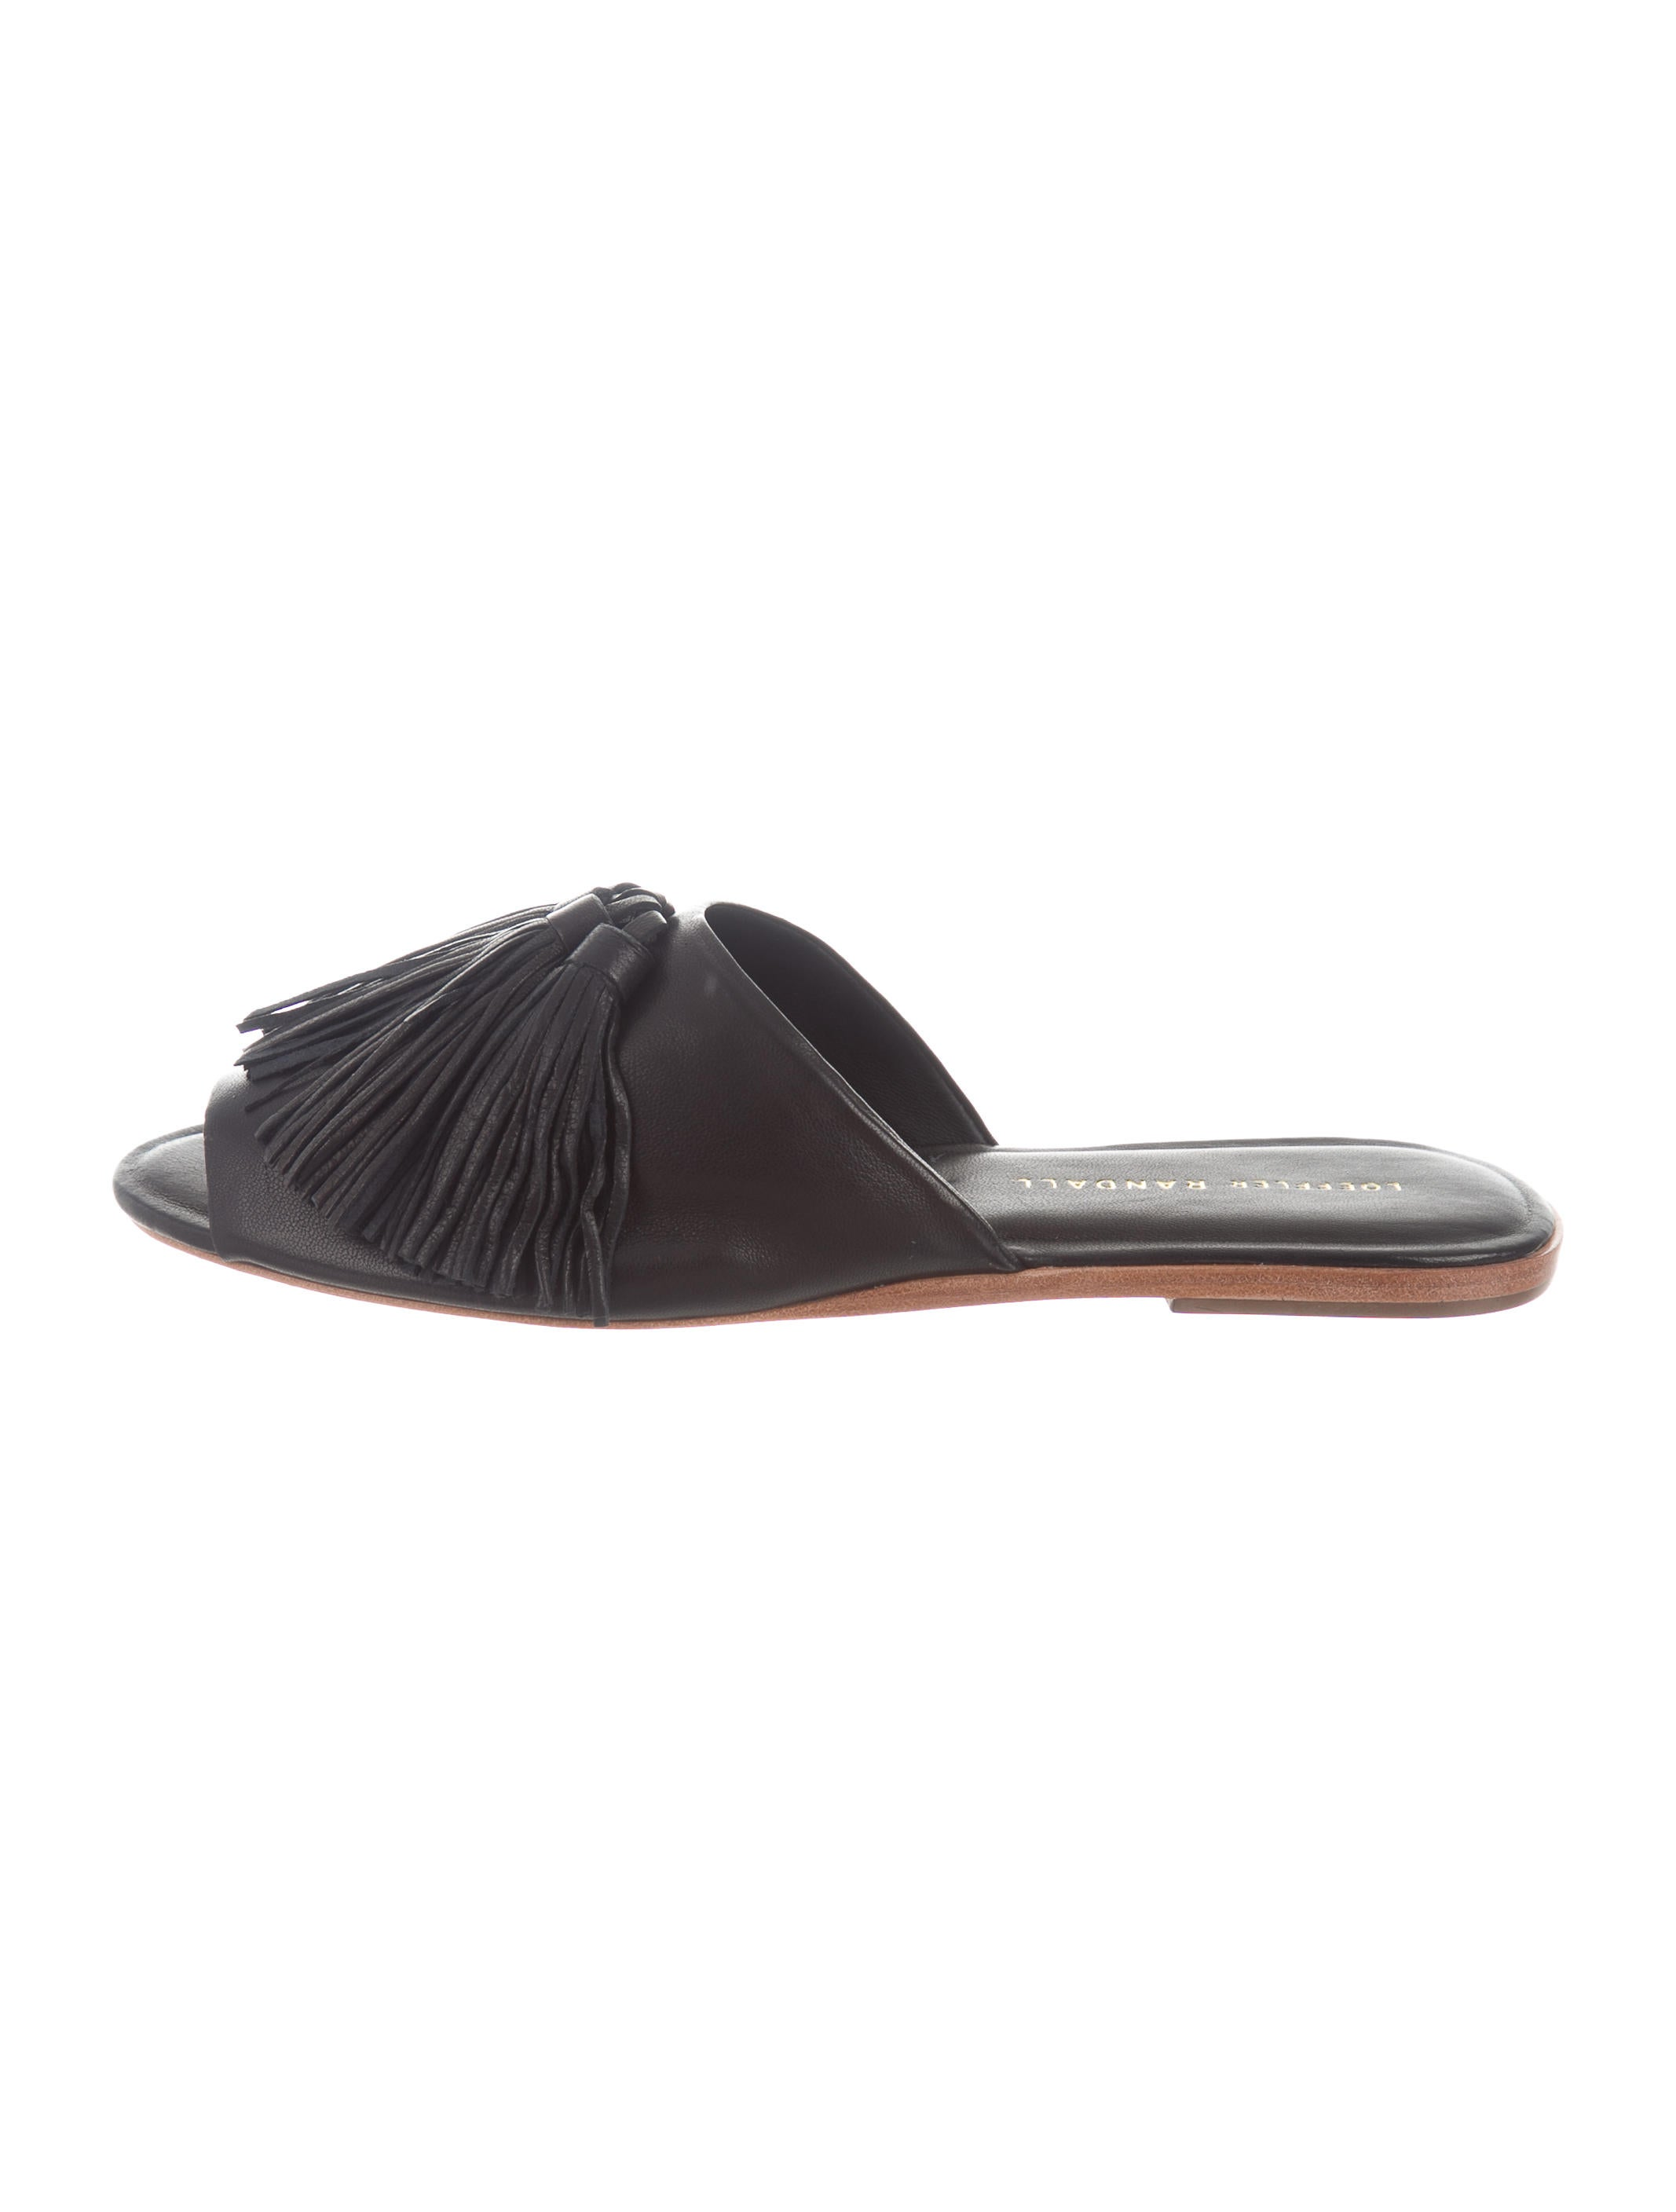 manchester great sale Loeffler Randall Kiki Peep-Toe Mules w/ Tags best seller sale online extremely online wgg0czC